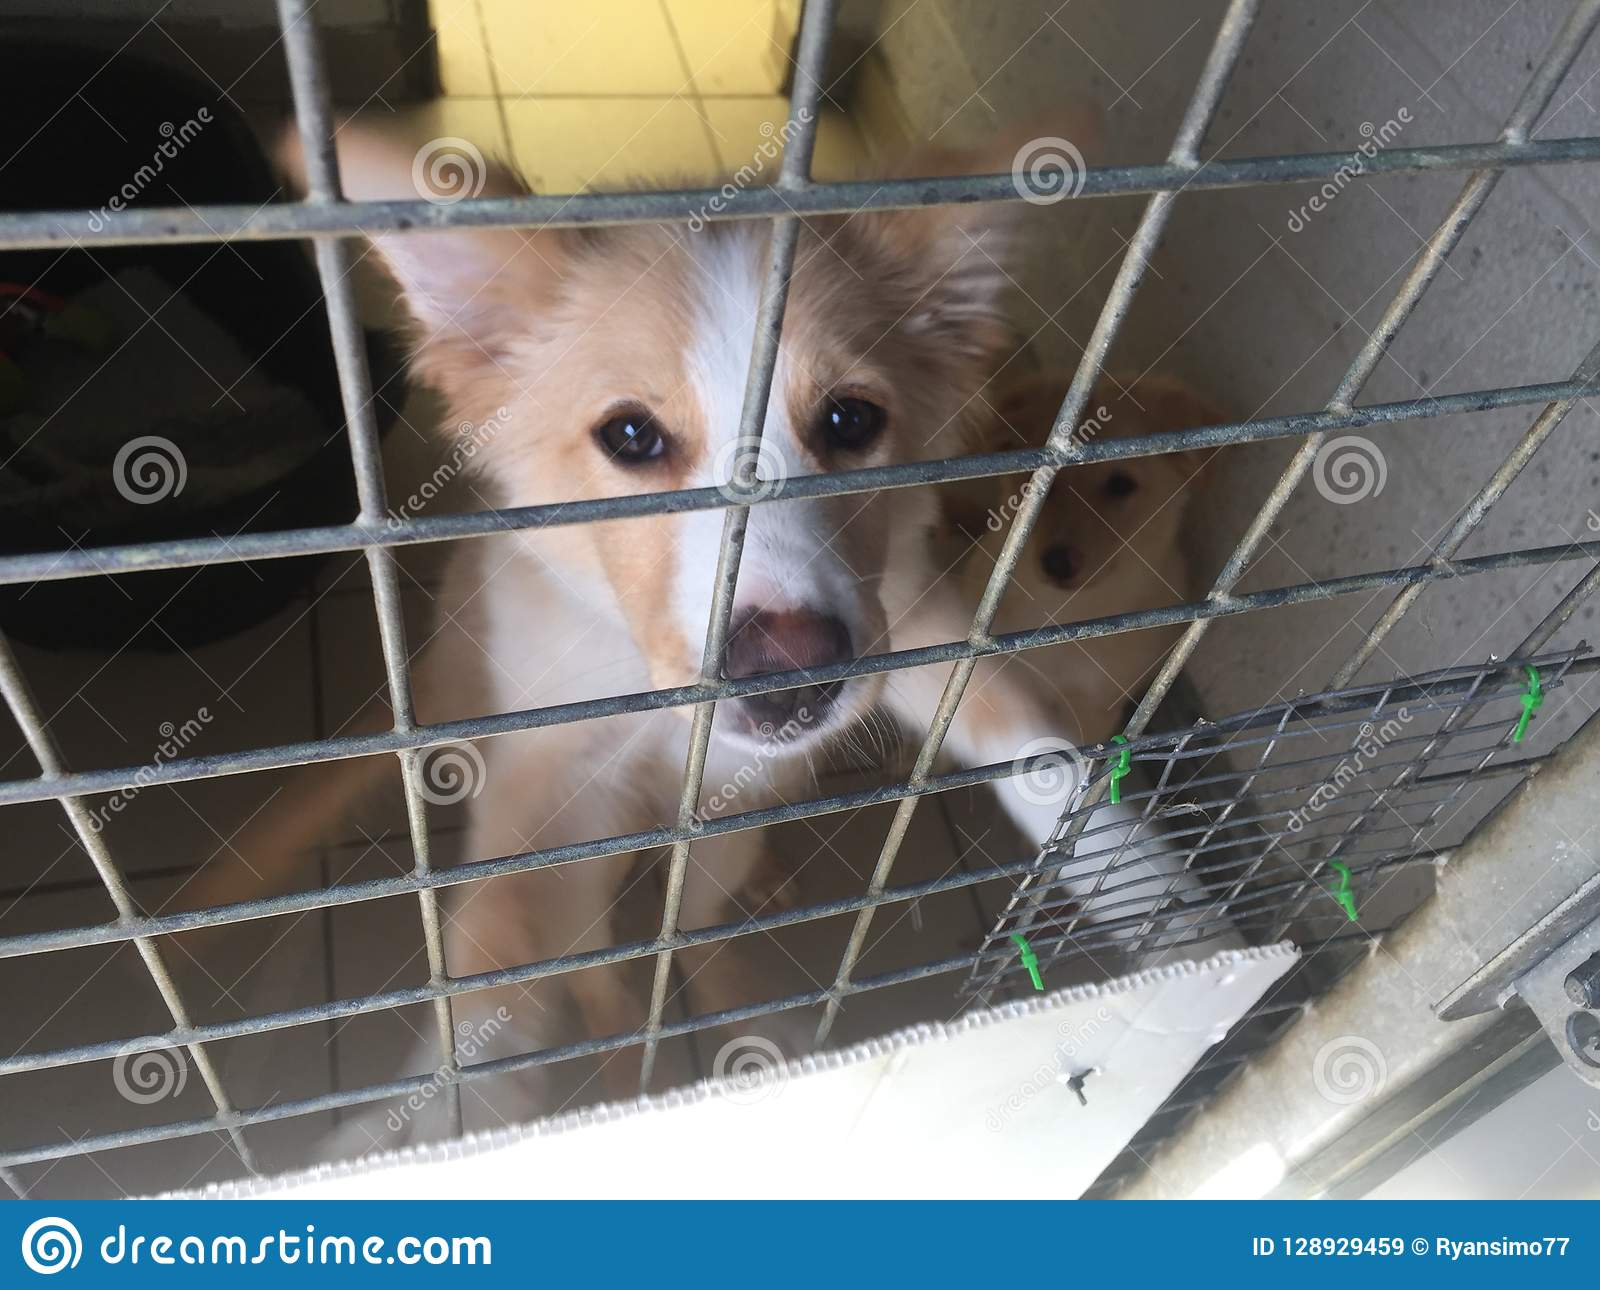 Dog at a rescue shelter in a cage